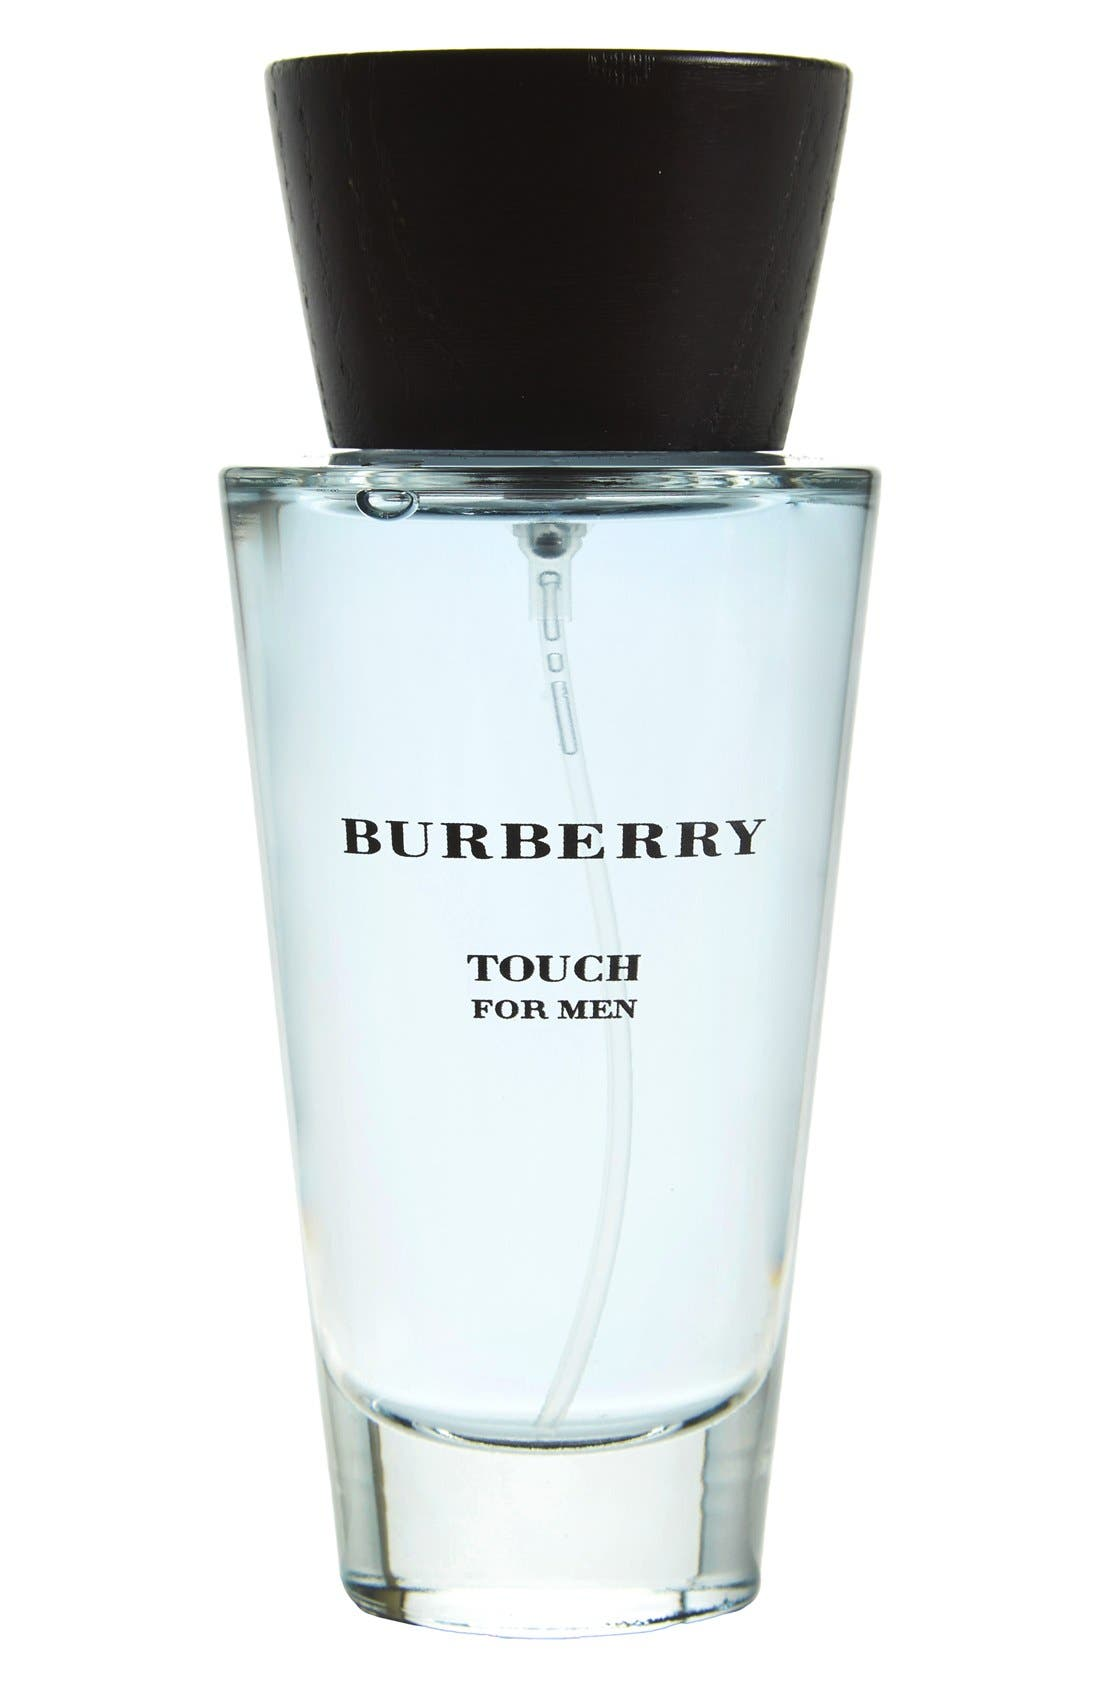 Burberry 'Touch' Eau de Toilette Spray for Men